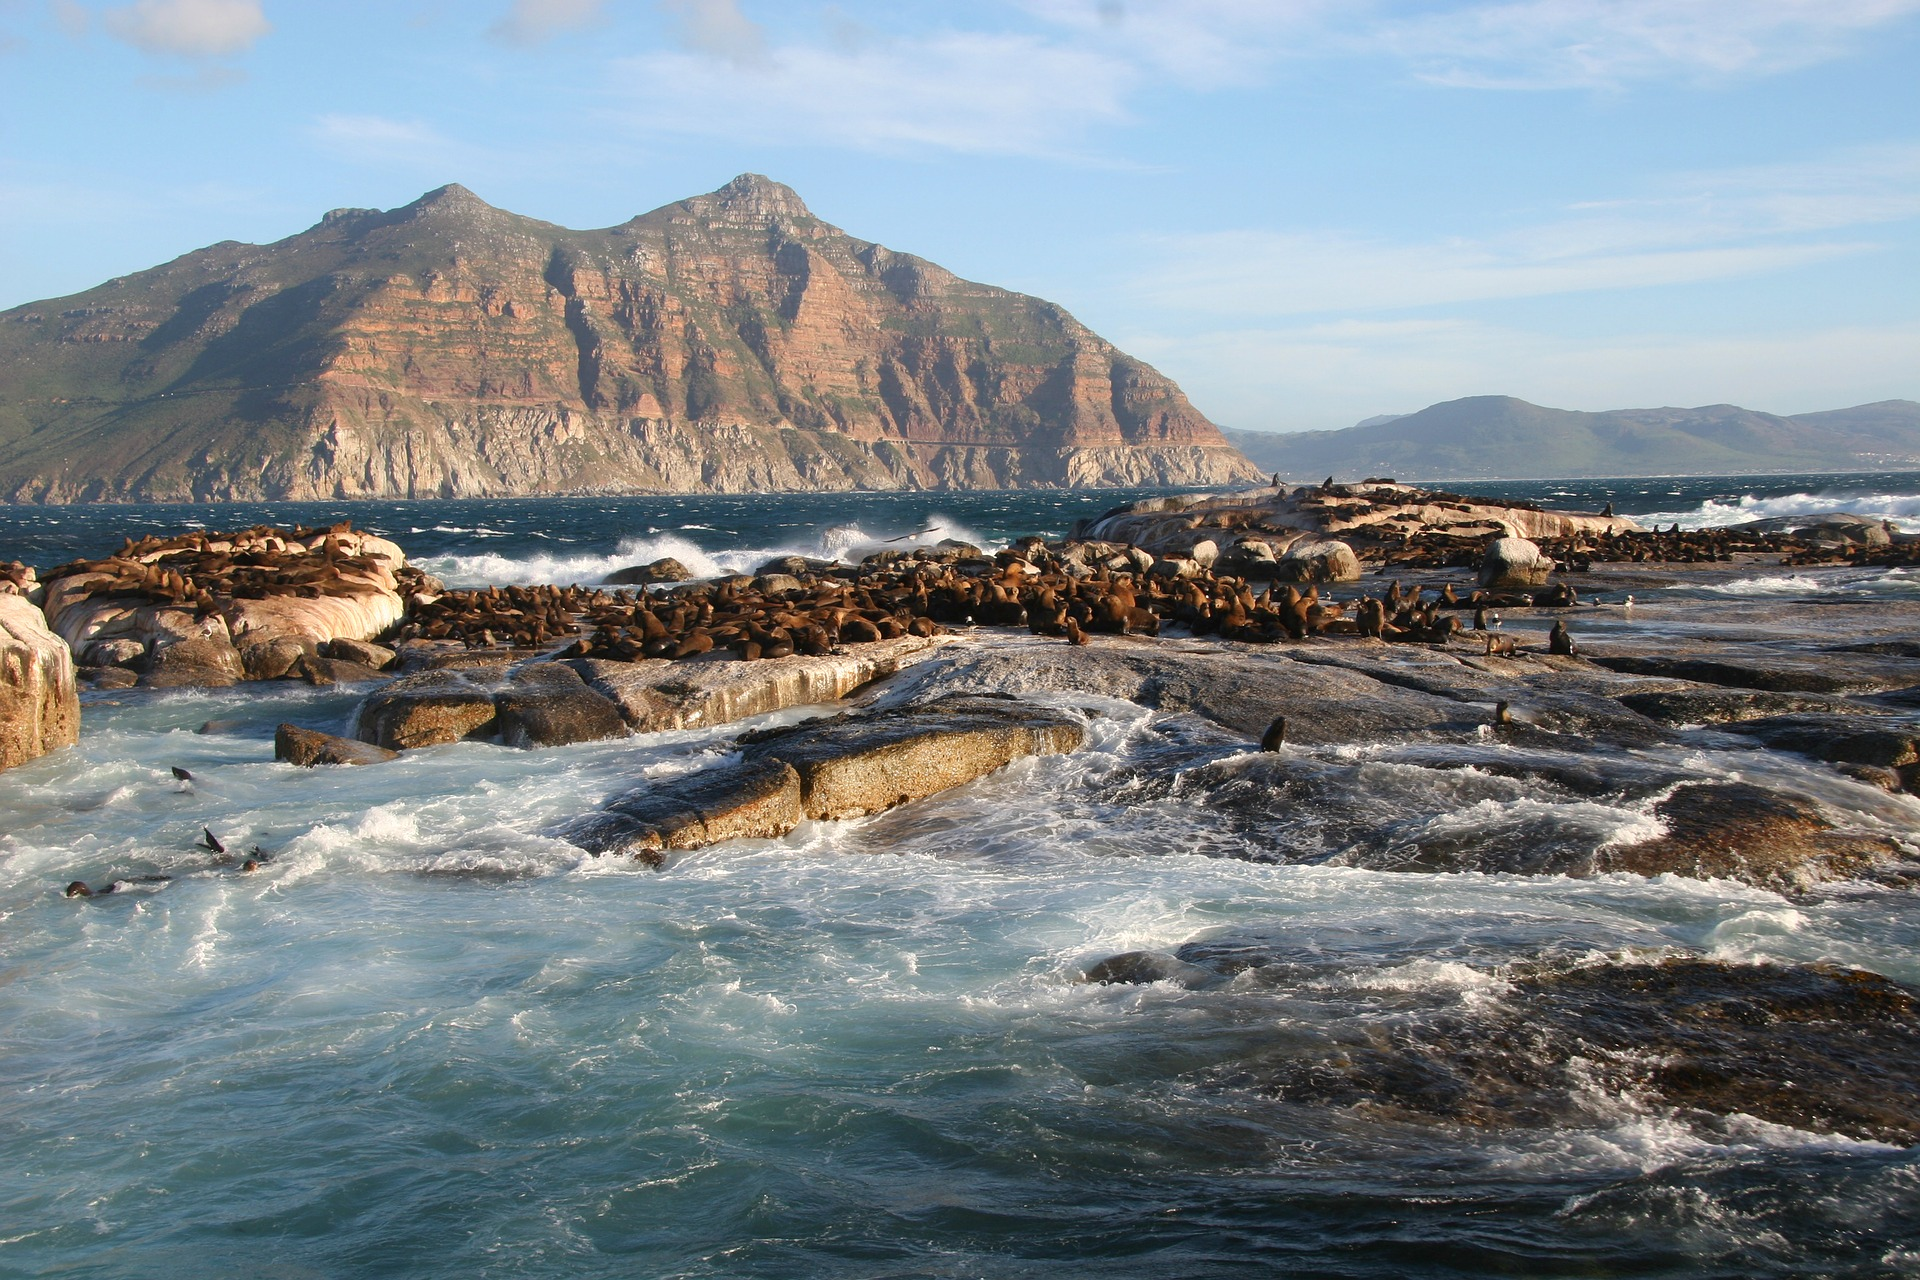 Duiker Island, Hout Bay, South Africa